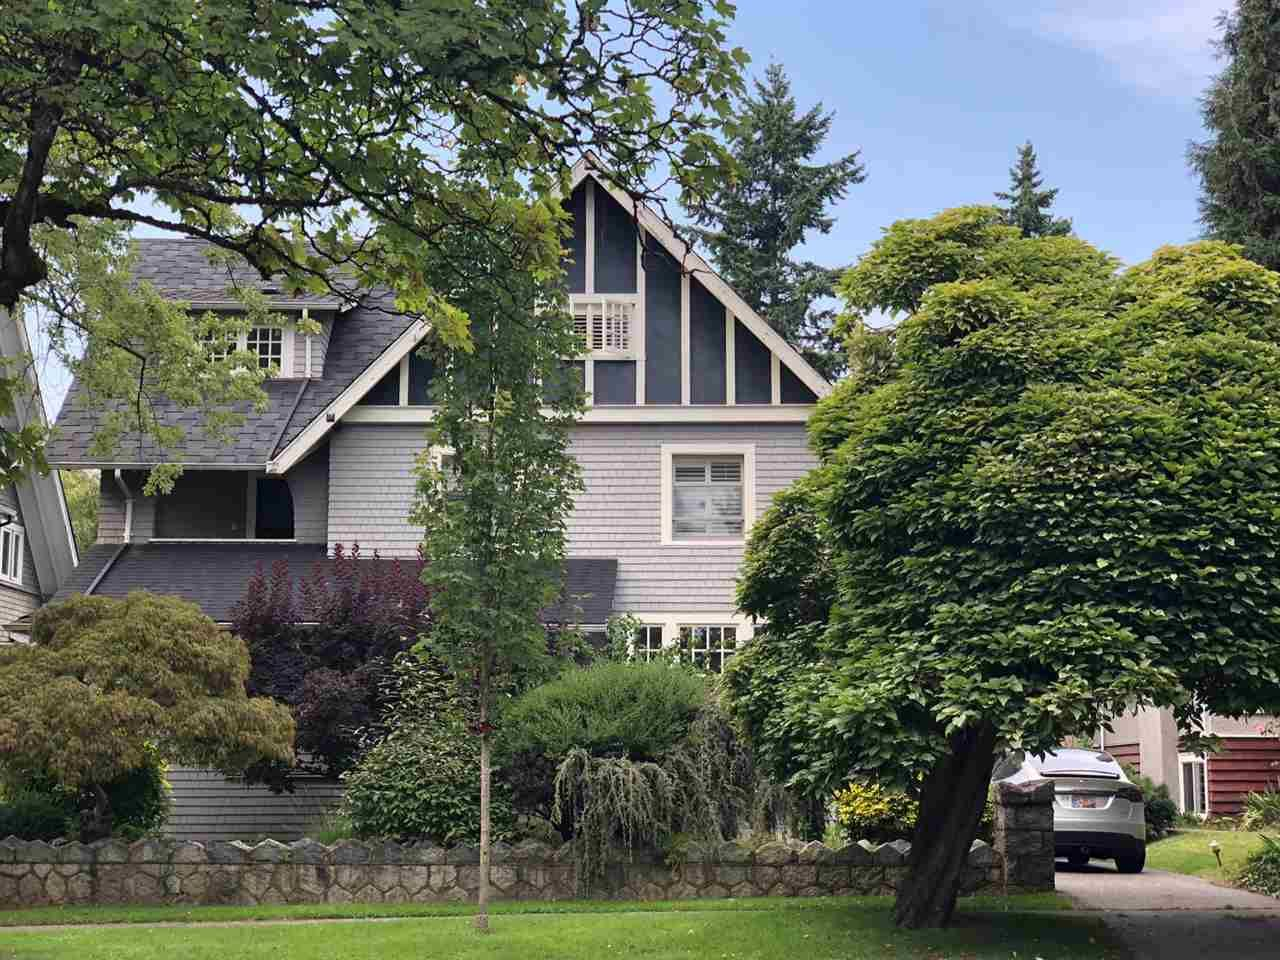 """Main Photo: 3057 W 39TH Avenue in Vancouver: Kerrisdale House for sale in """"Kerrisdale"""" (Vancouver West)  : MLS®# R2393583"""